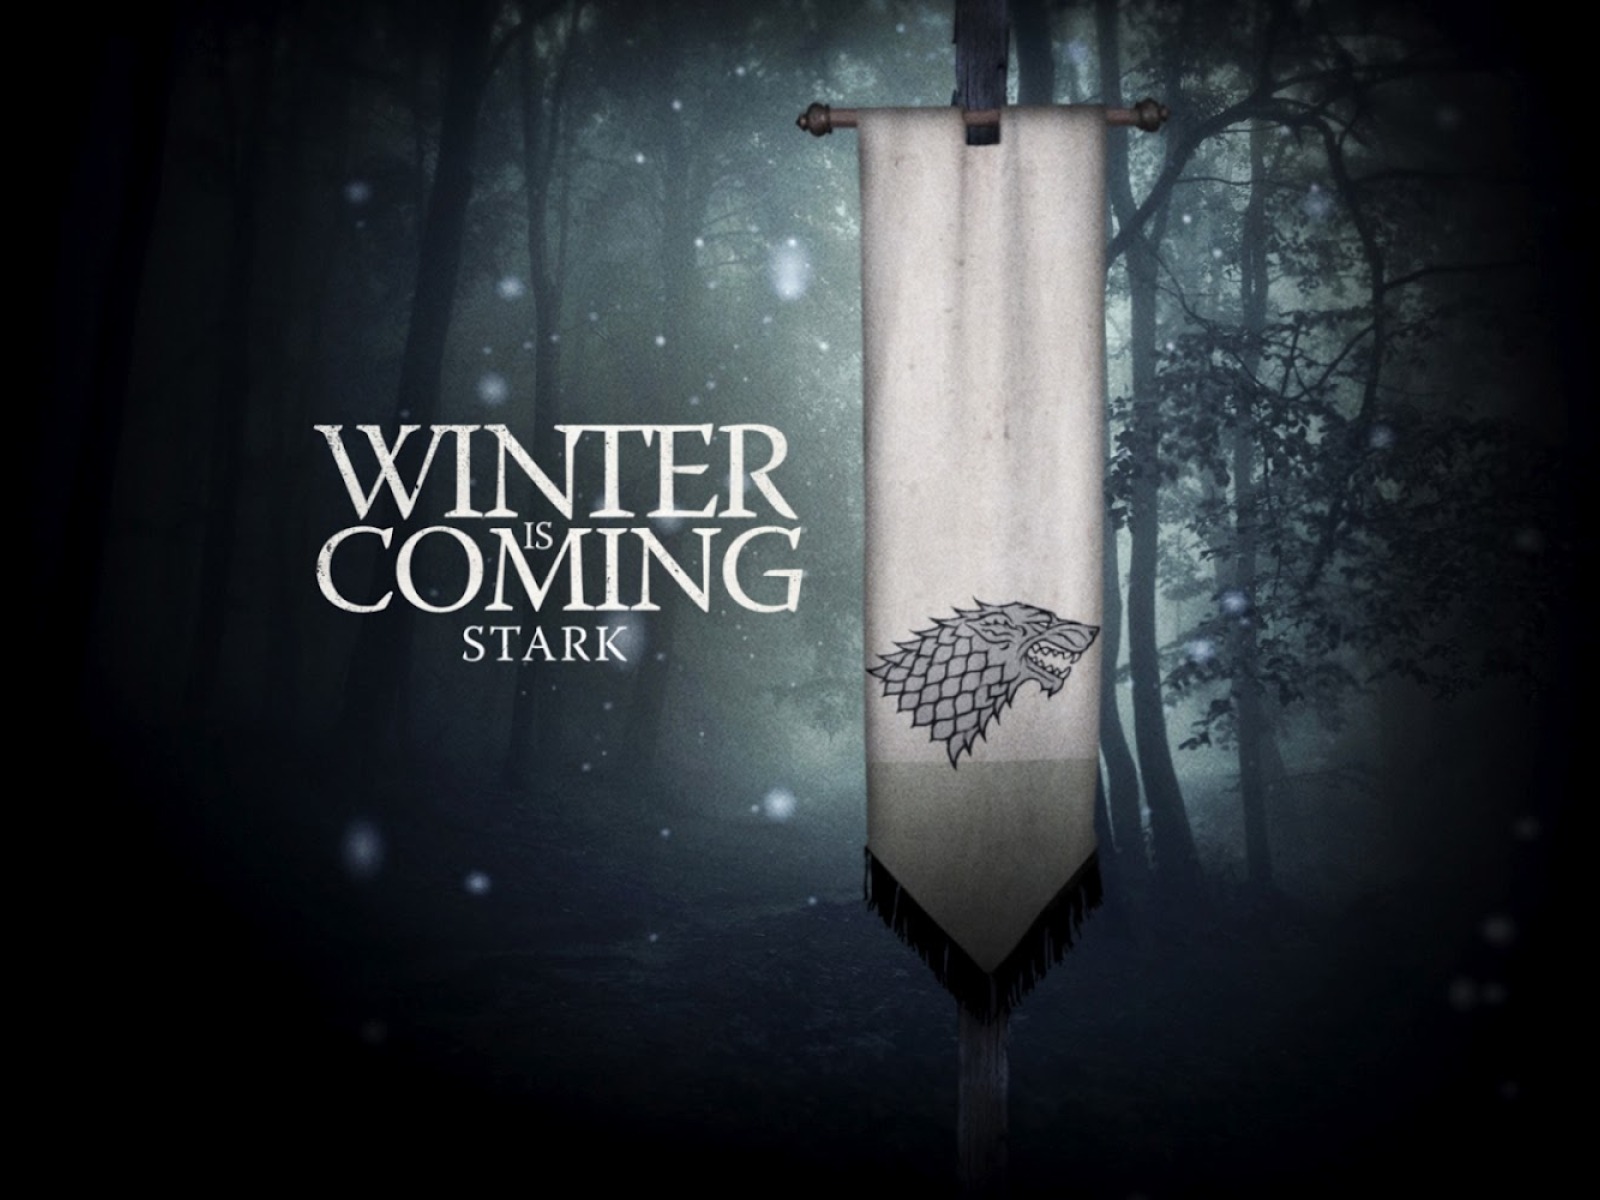 Game Of Thrones Winter Is Coming Stark Photoshoot, Full HD